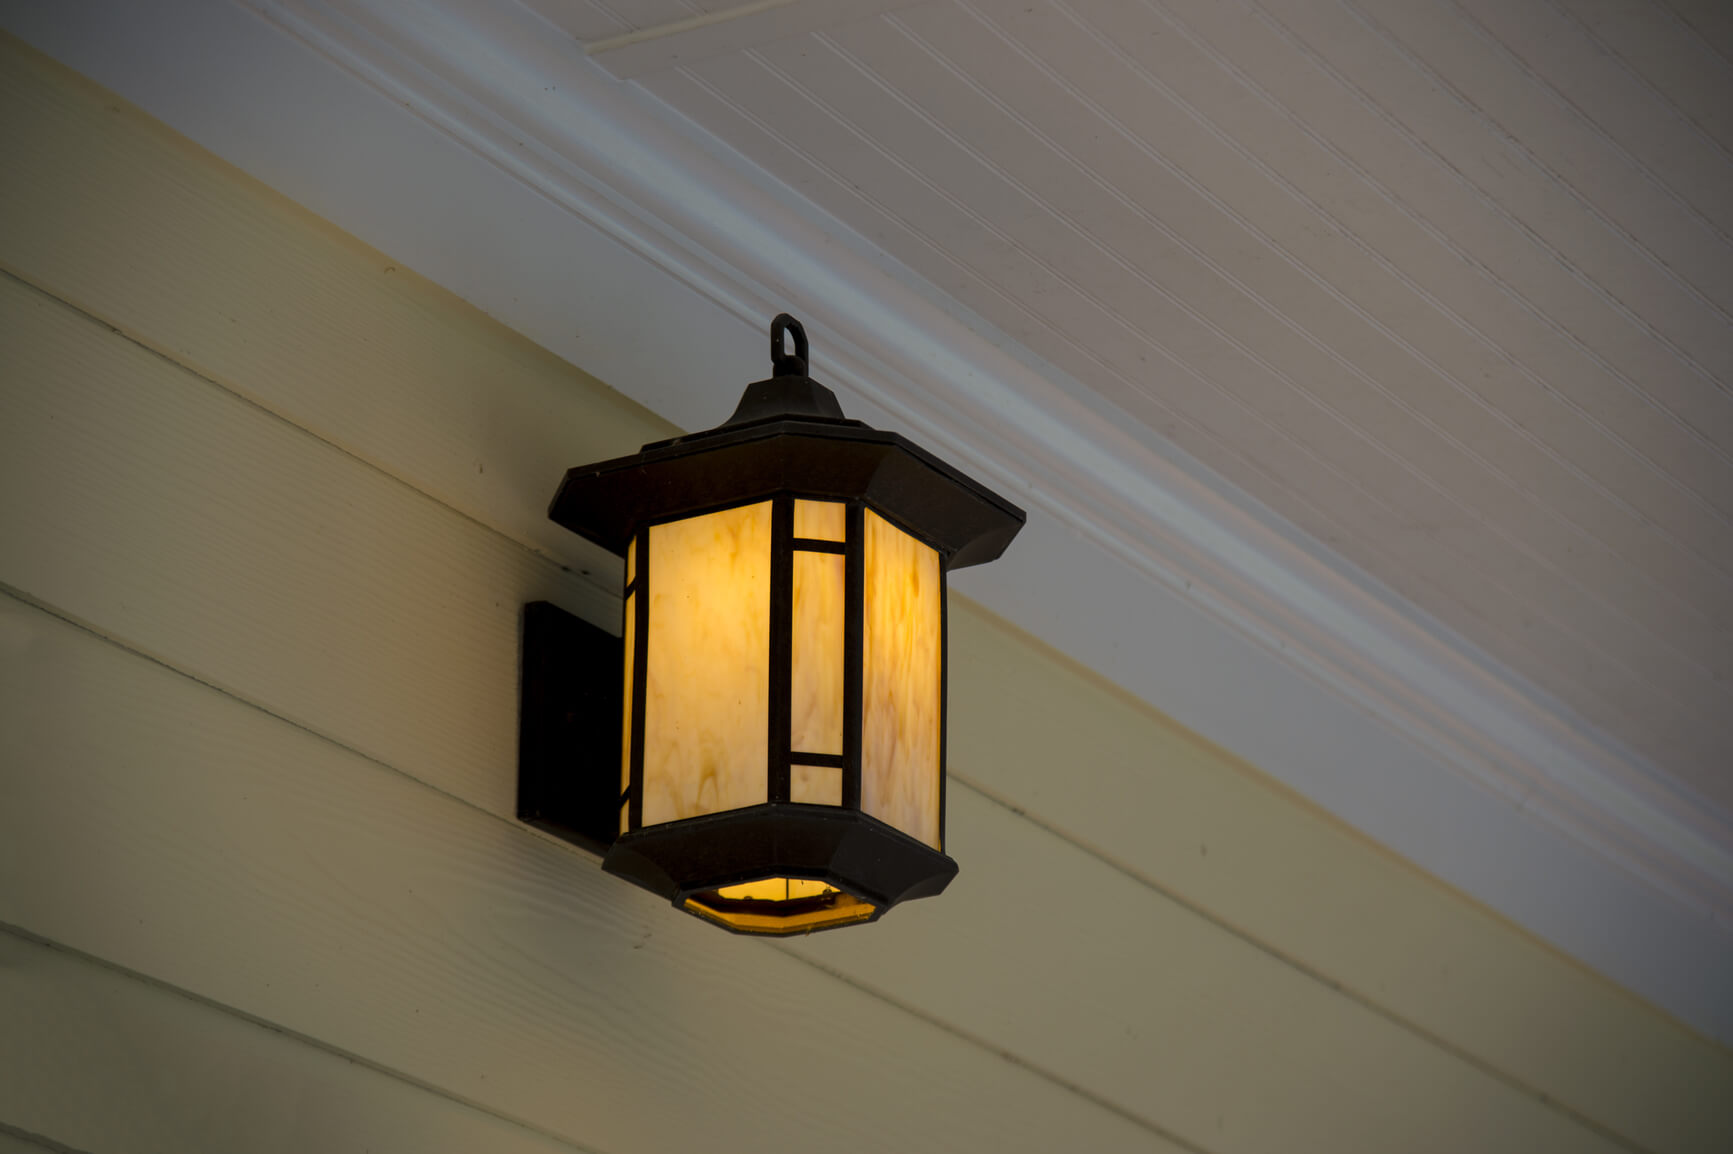 Budget-Friendly Curb Appeal Ideas: Update the porch light